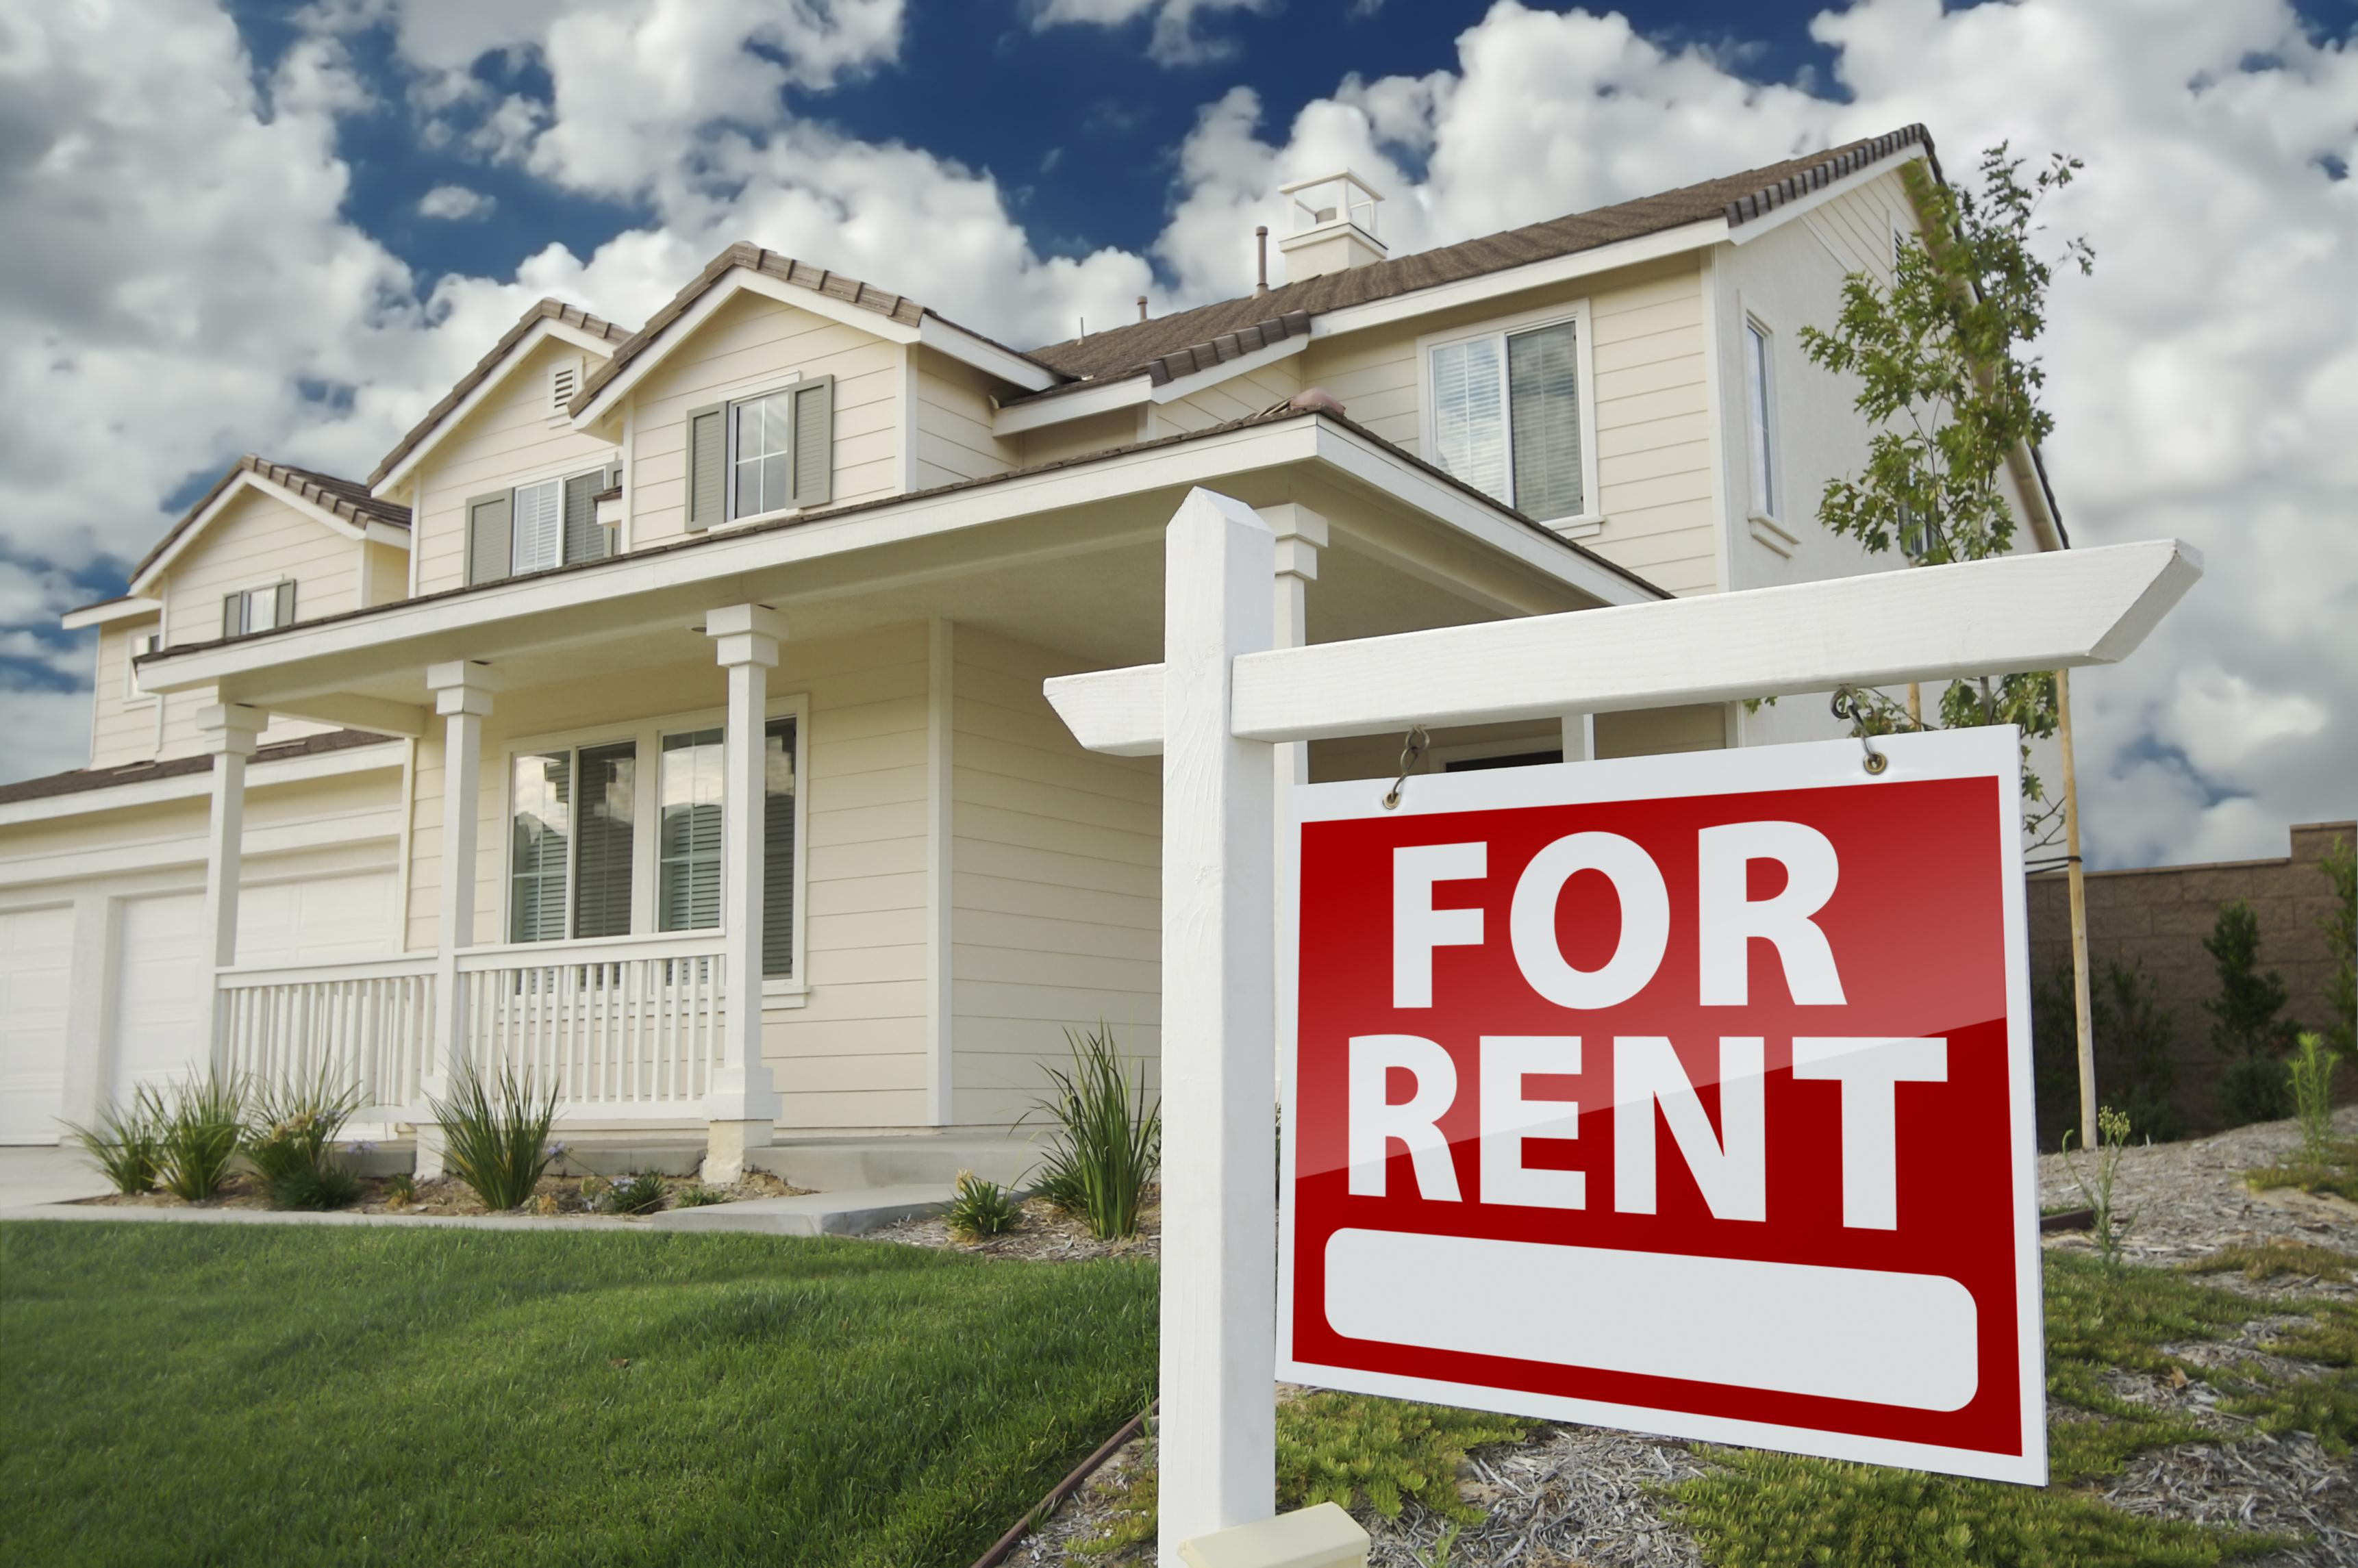 RENTALS FOR RENT HOMES FOR RENT APARTMENTS KINGSLAND RENTALS ST MARYS RENTALS